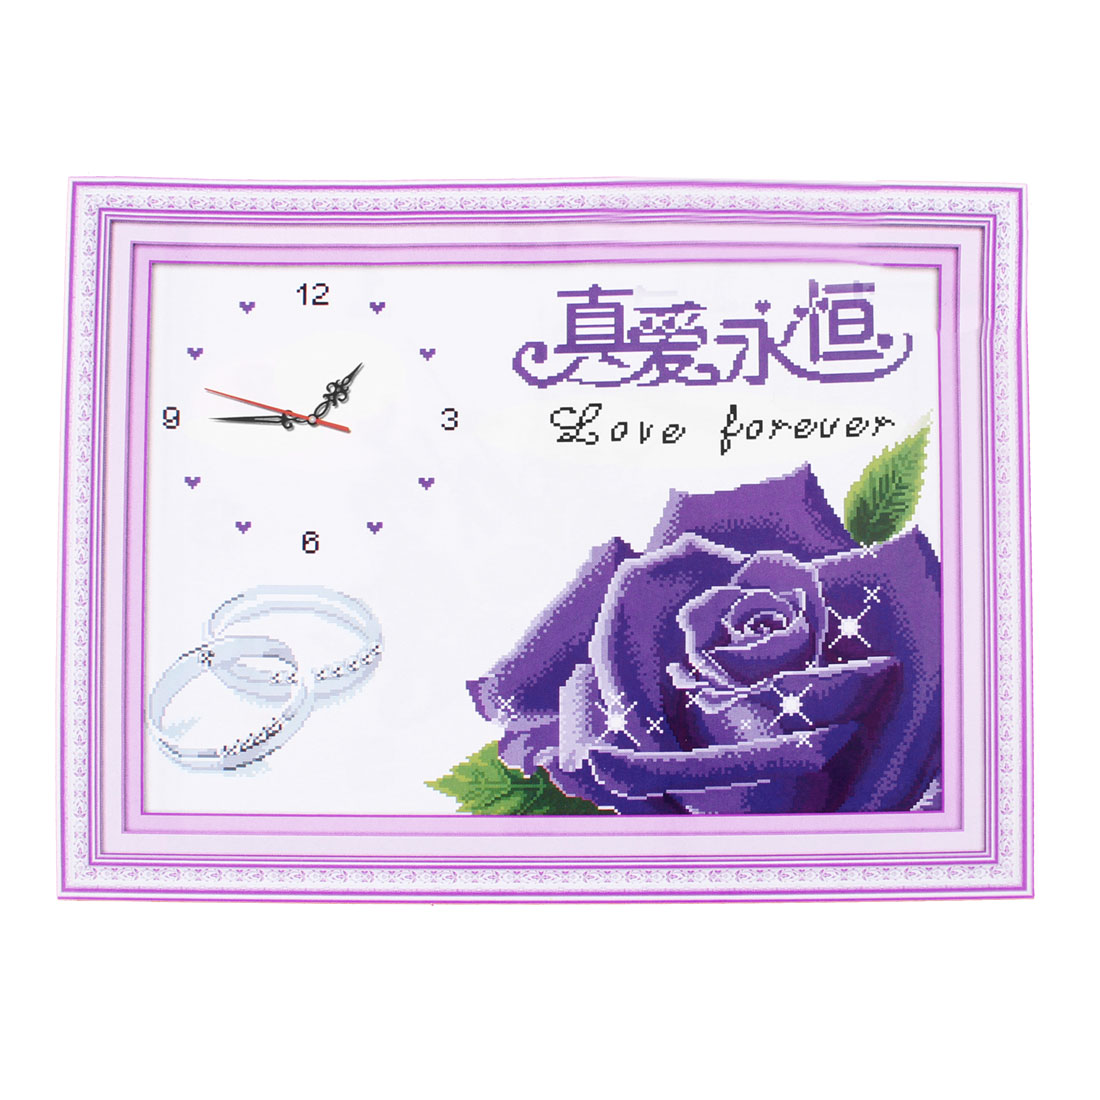 Rose Ring Digital Clock Printed Stamped Cross Stitch Counted Kit for Ladies